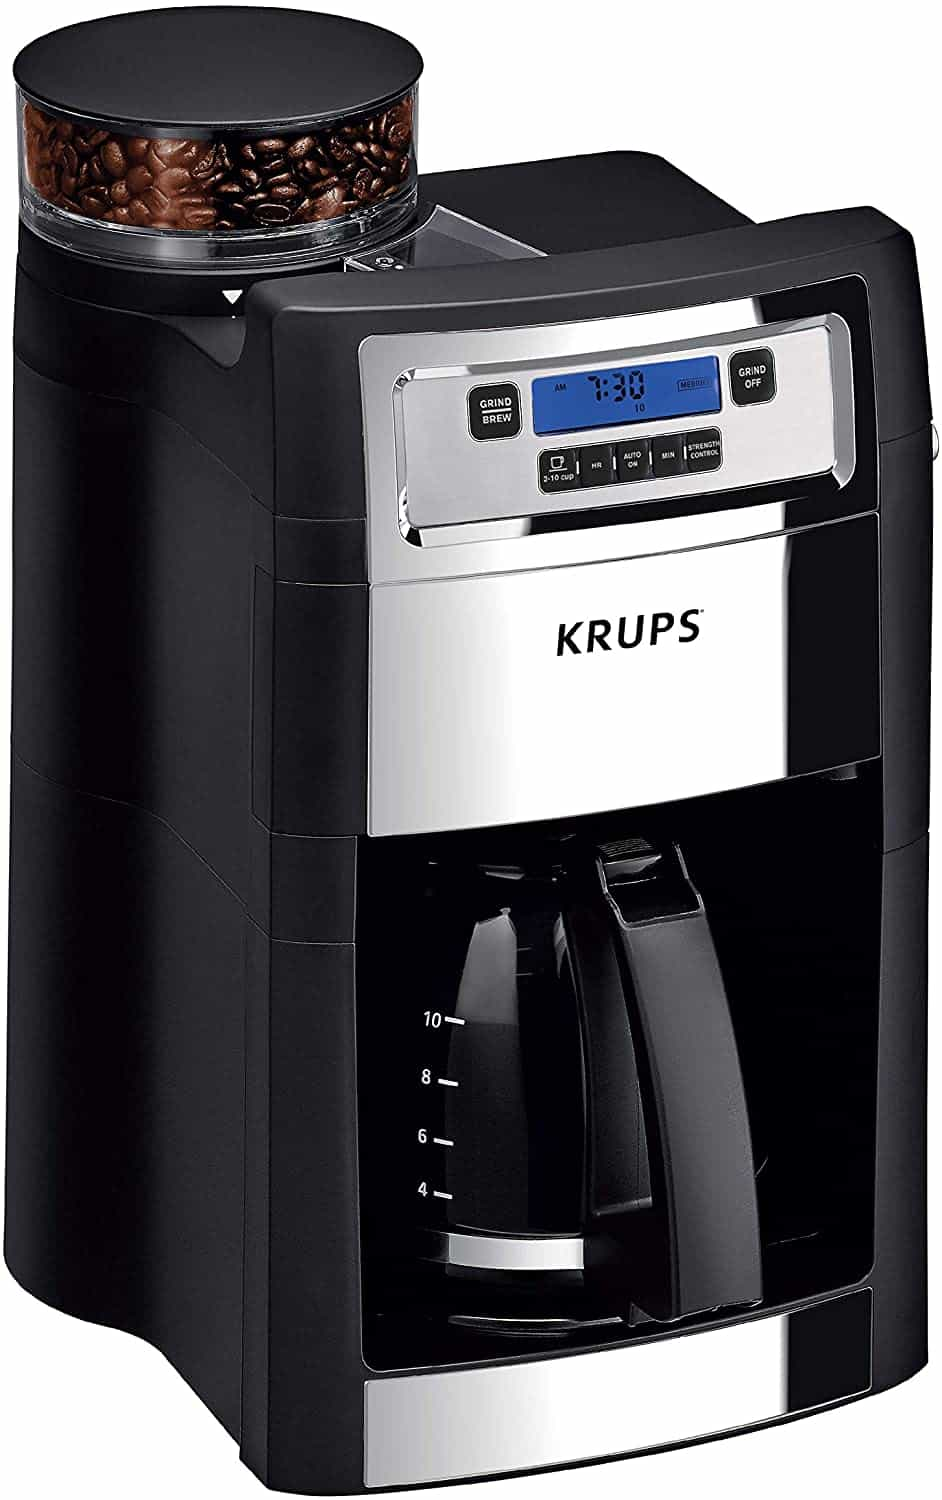 KRUPS Grind and Brew Coffee Maker with Grinder